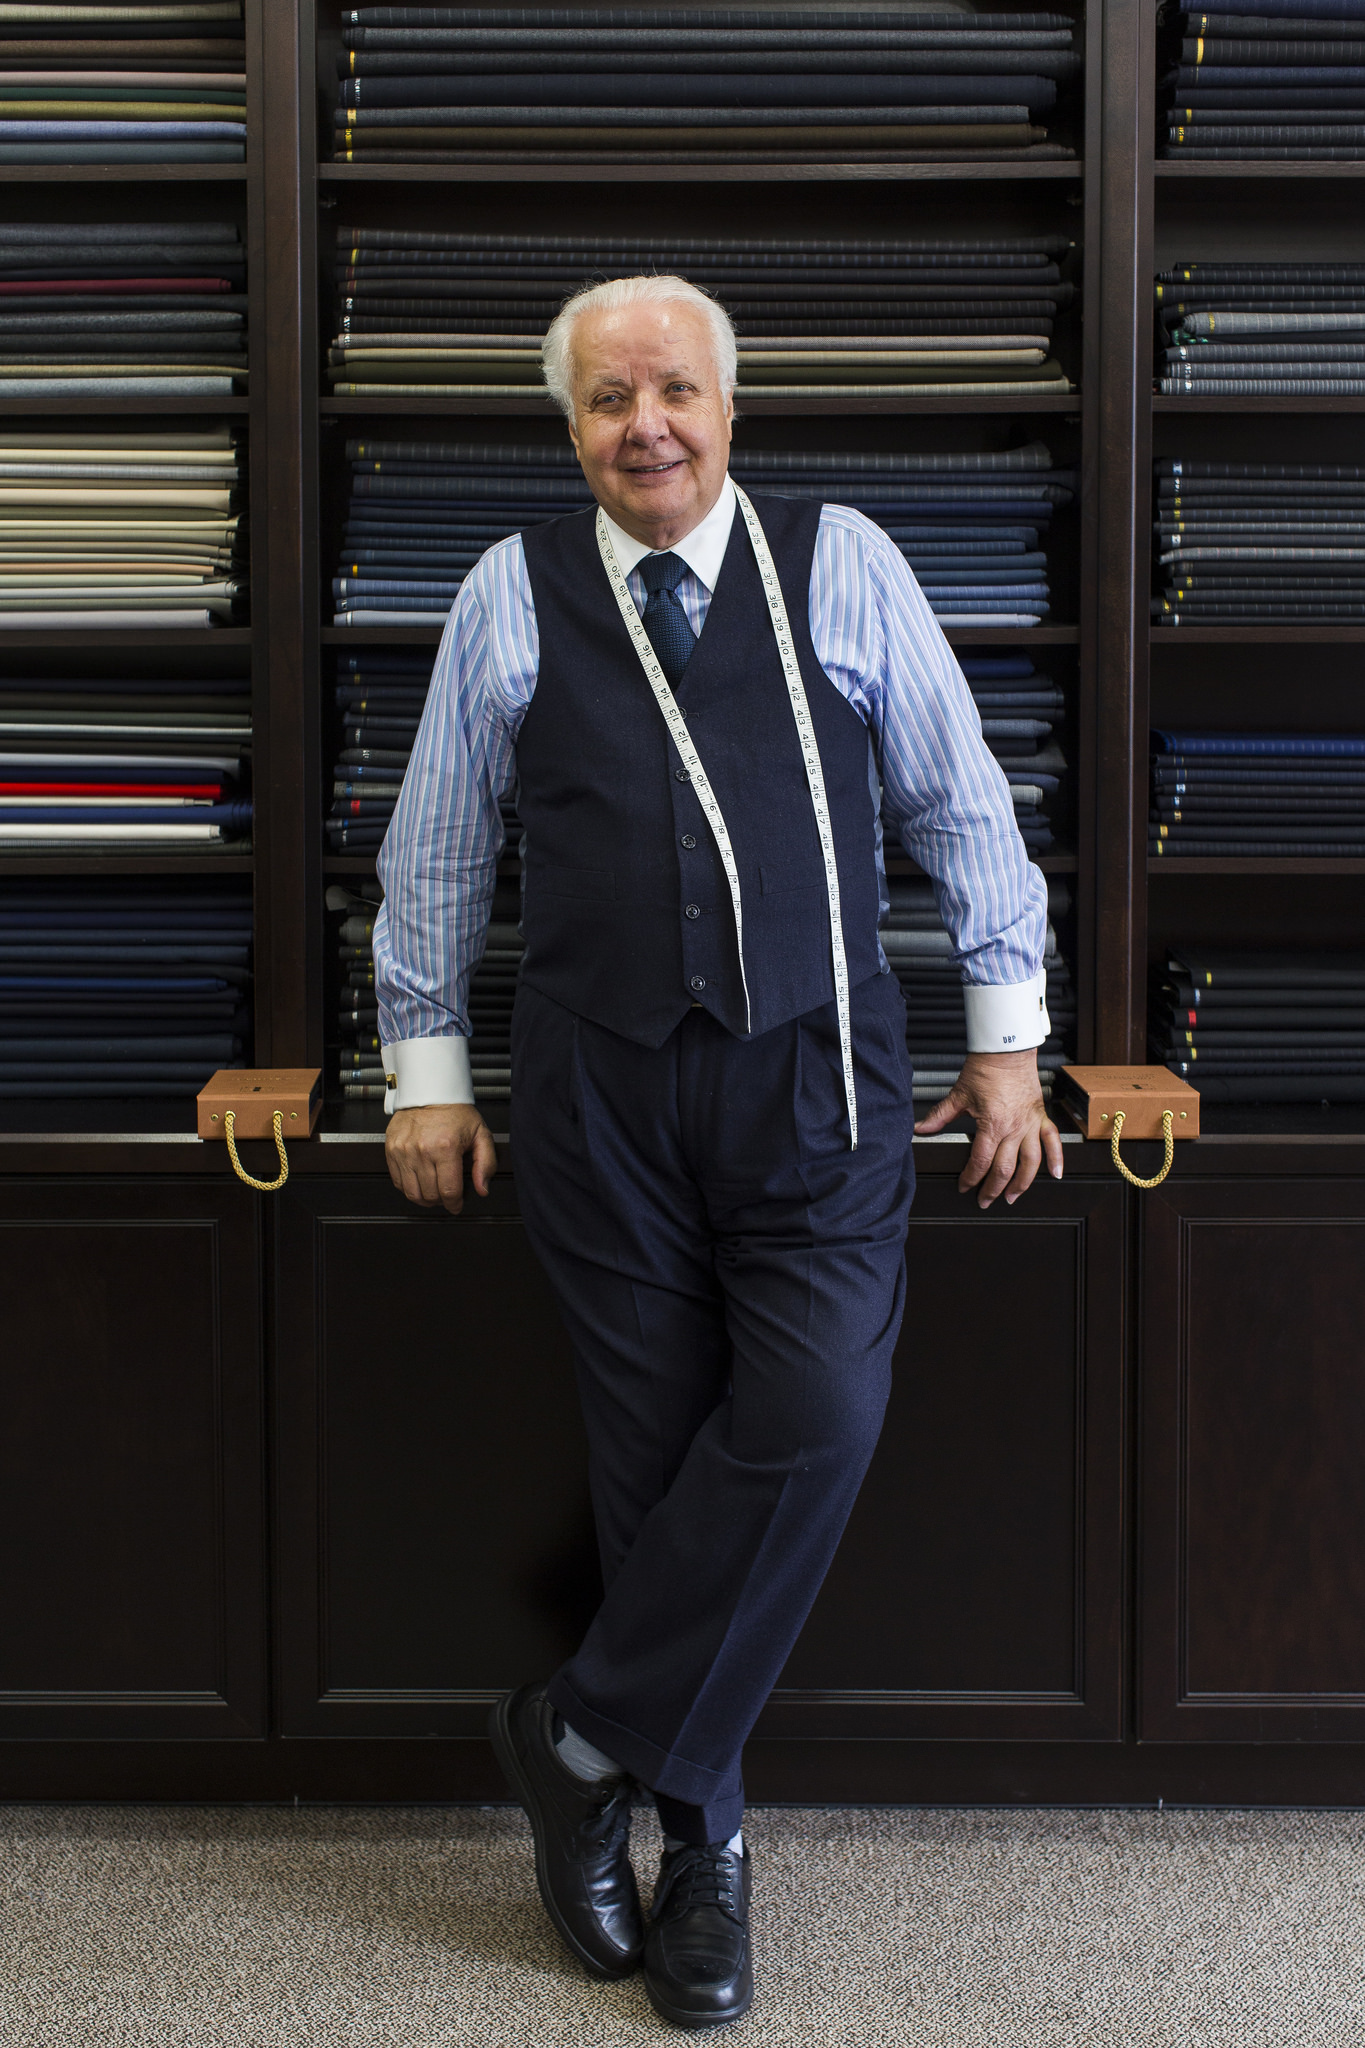 Umberto the Tailor